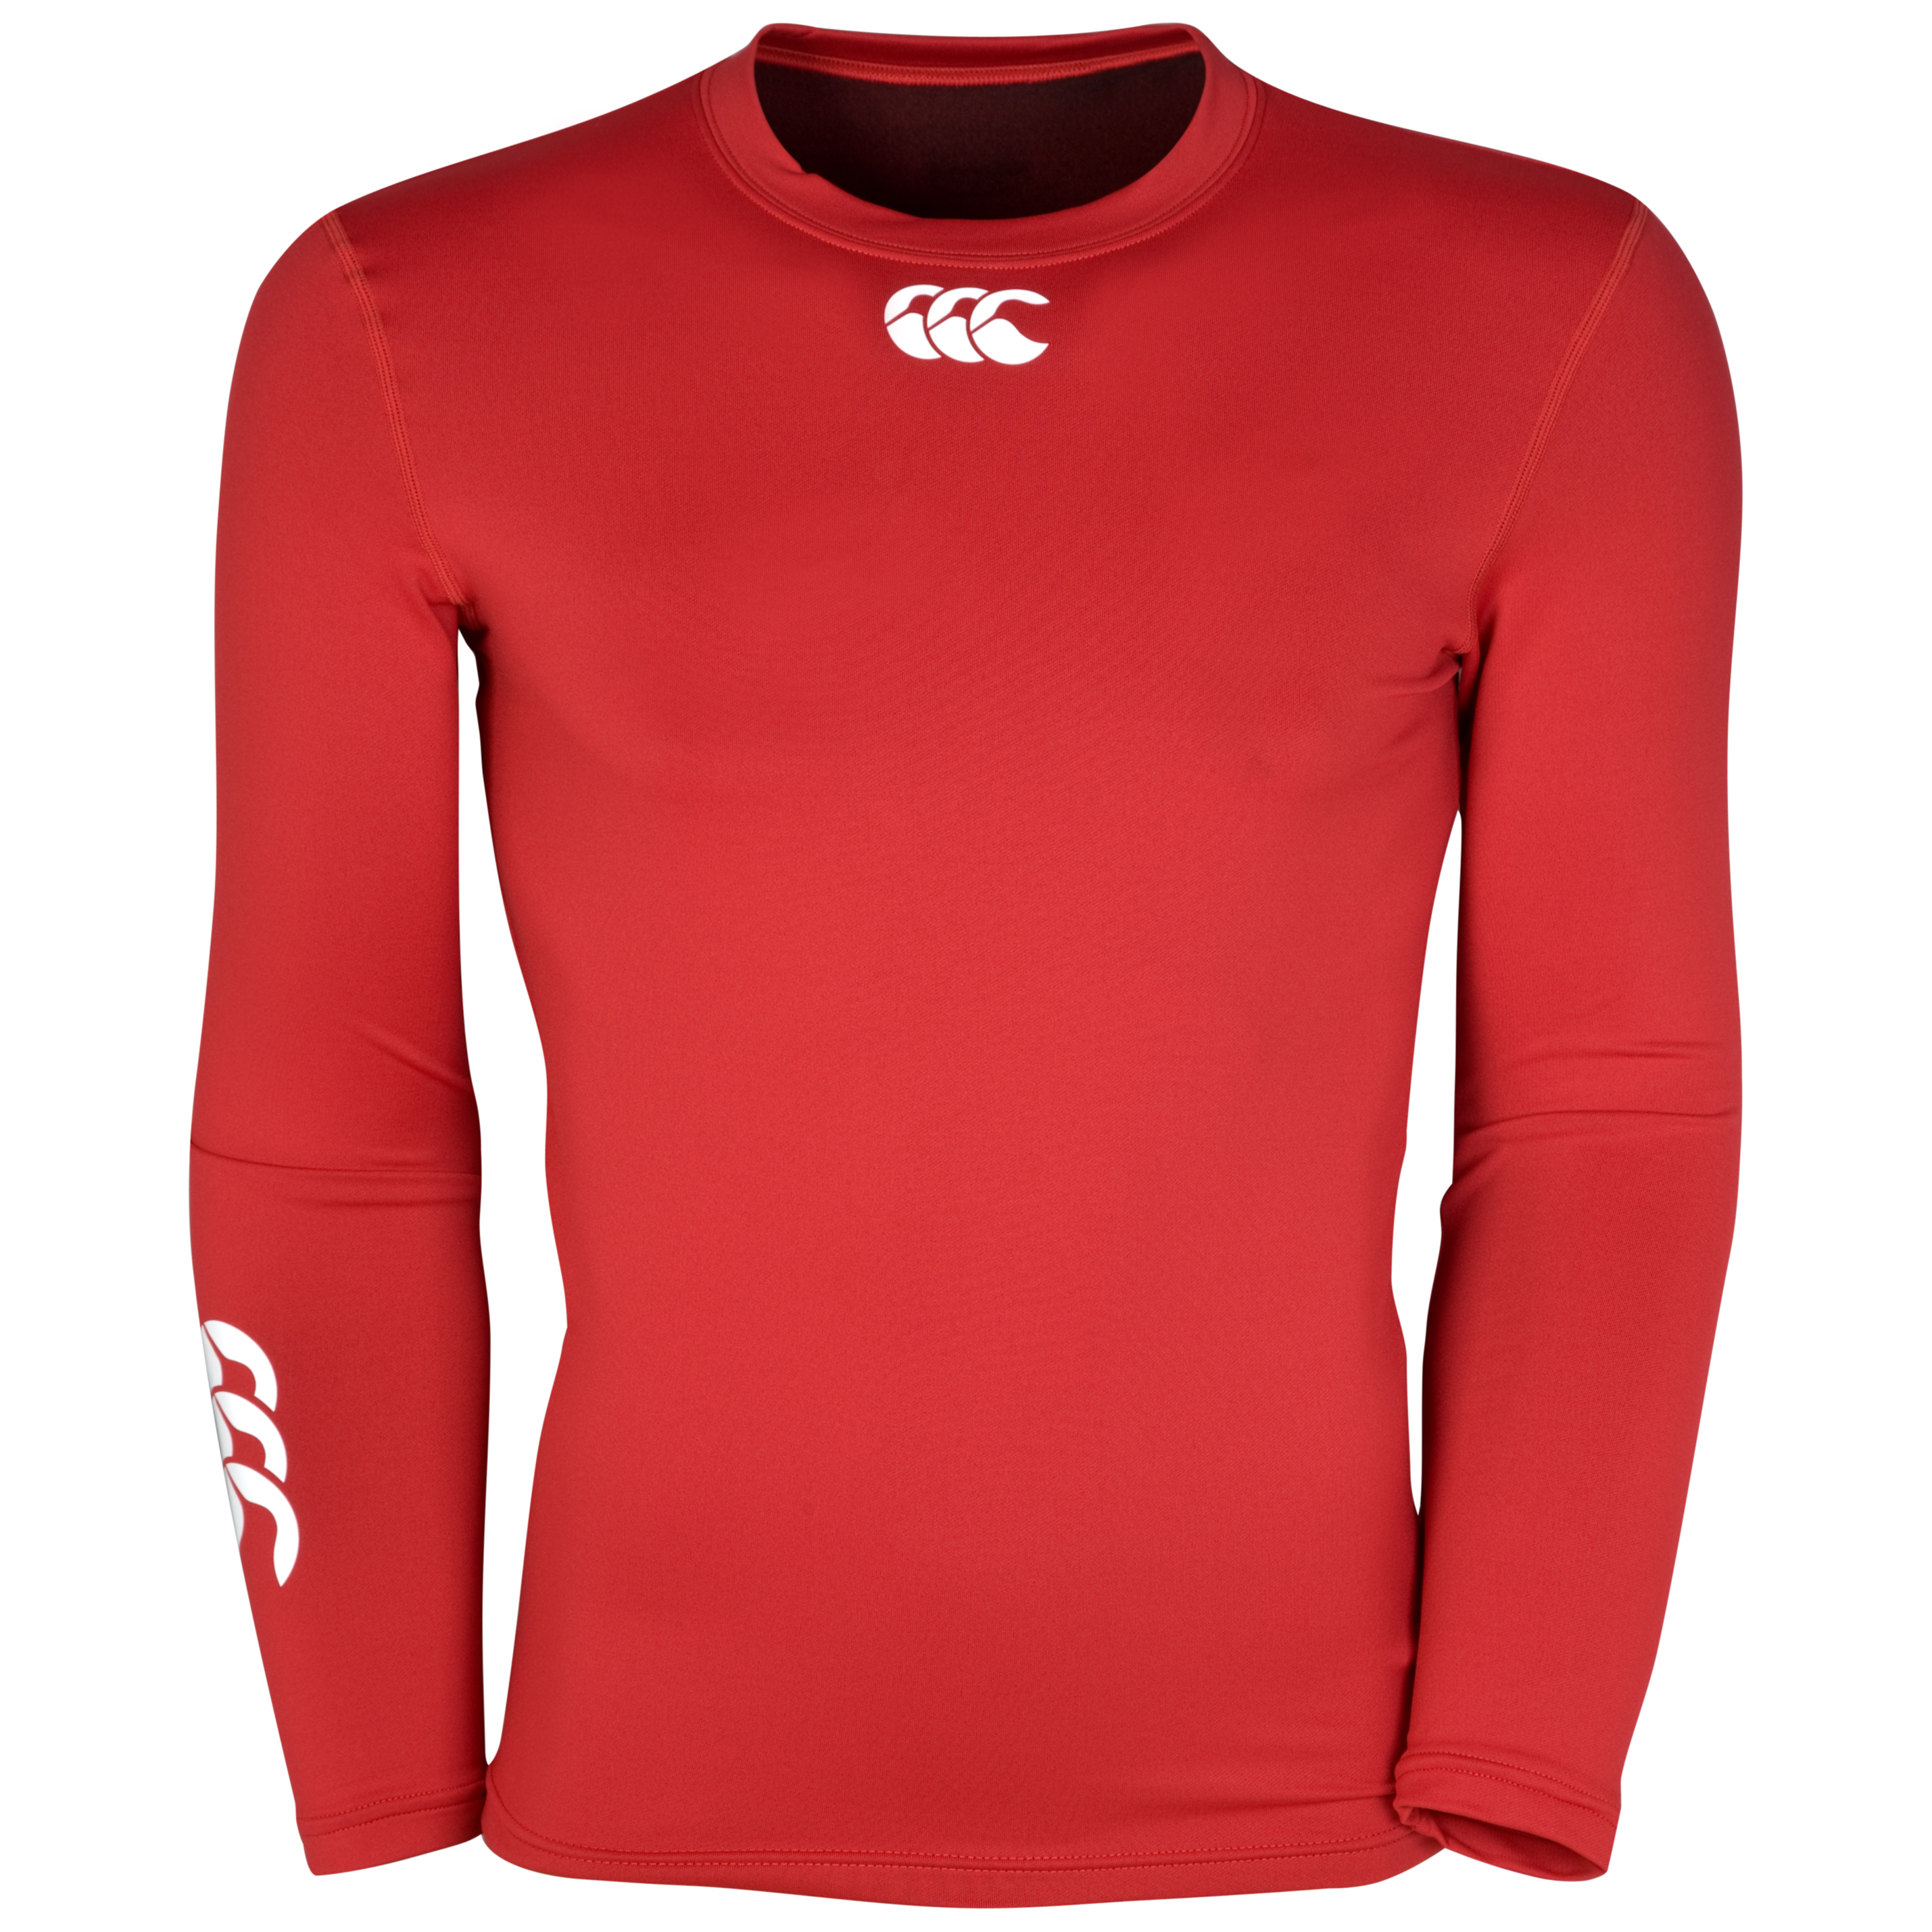 Canterbury Cold Long Sleeve Baselayer Top - Red. for 30€